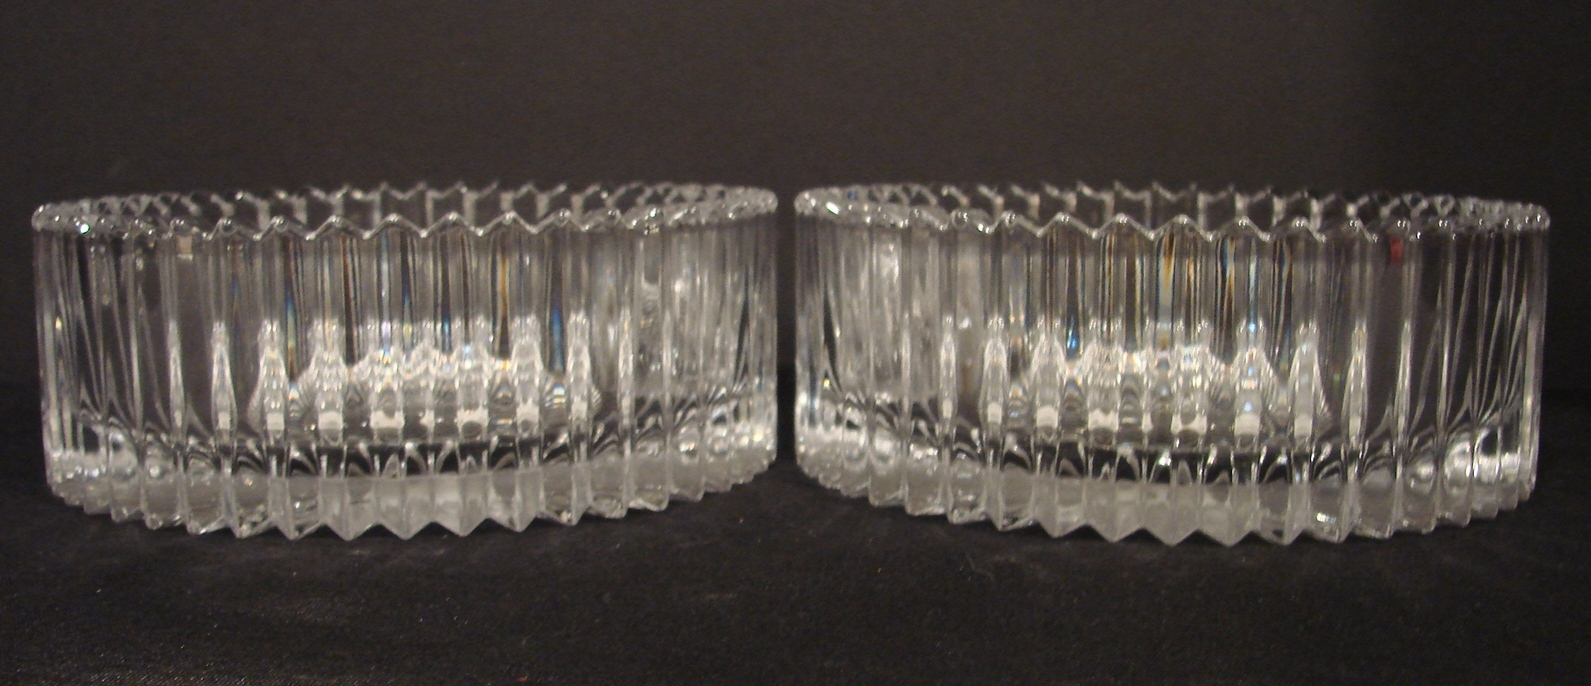 2 (Two) Mikasa Diamond Fire Indiv. 8 Inch Round Crystal Bowls - $29.99